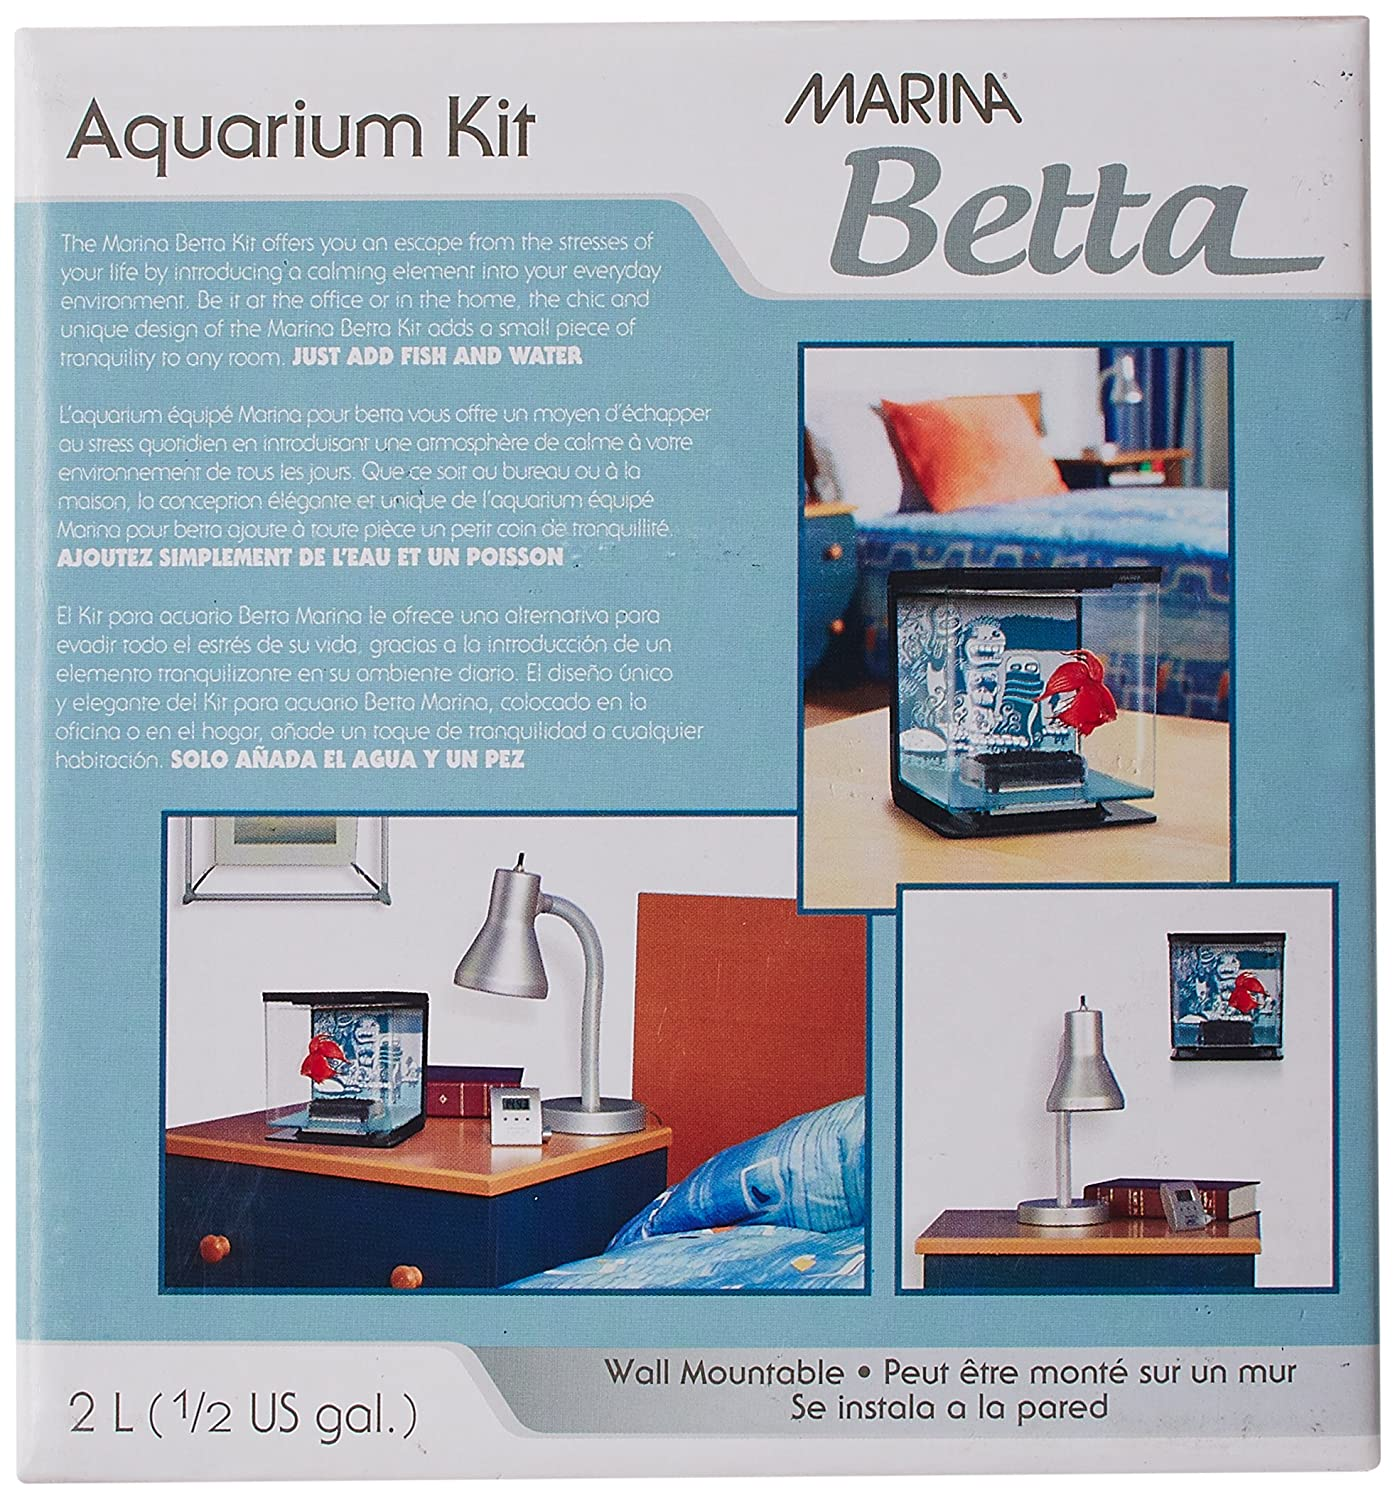 Amazon.com : Marina Betta Aquarium Starter Kit, Wild Things : Pet Supplies